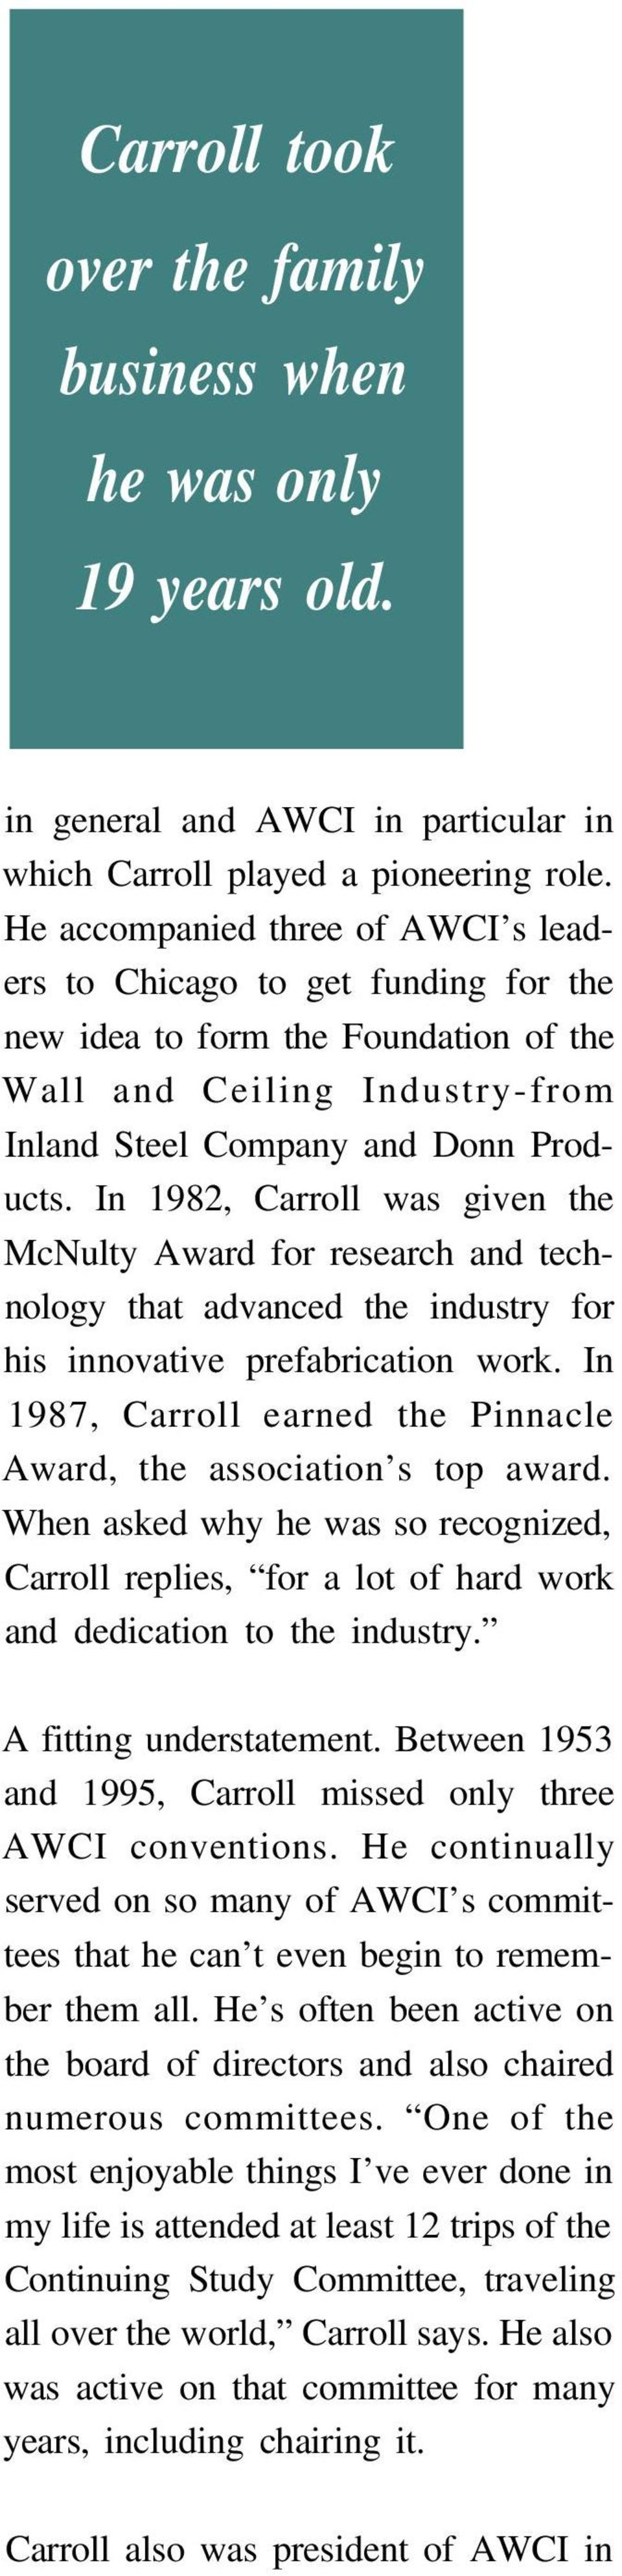 In 1982, Carroll was given the McNulty Award for research and technology that advanced the industry for his innovative prefabrication work.